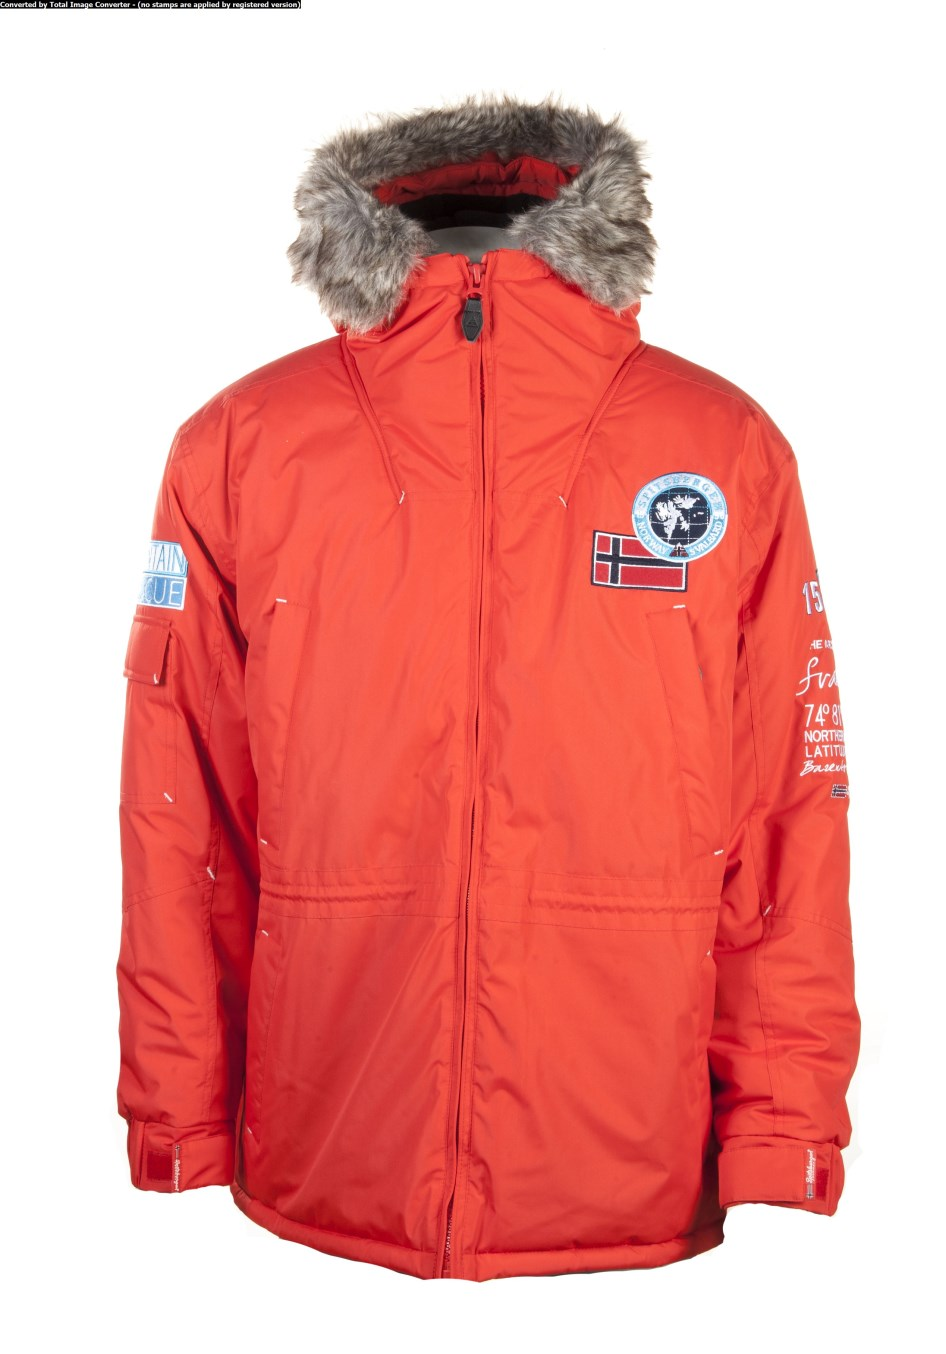 spitsbergen norway rescue herren winterjacke winter parka jacke jacket red ebay. Black Bedroom Furniture Sets. Home Design Ideas